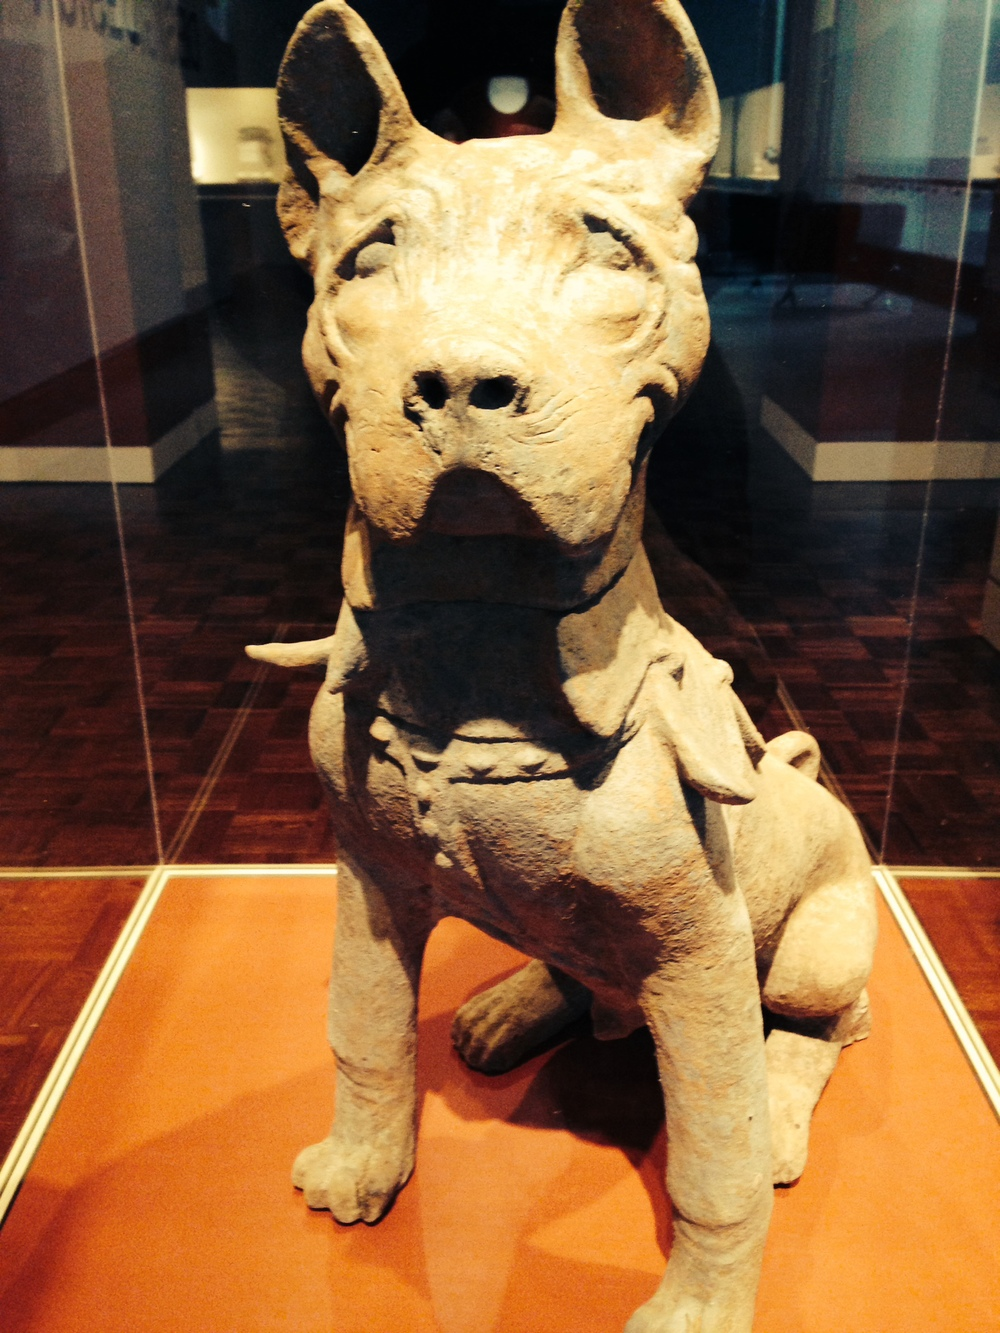 this dog has been this good for around 2000 years.